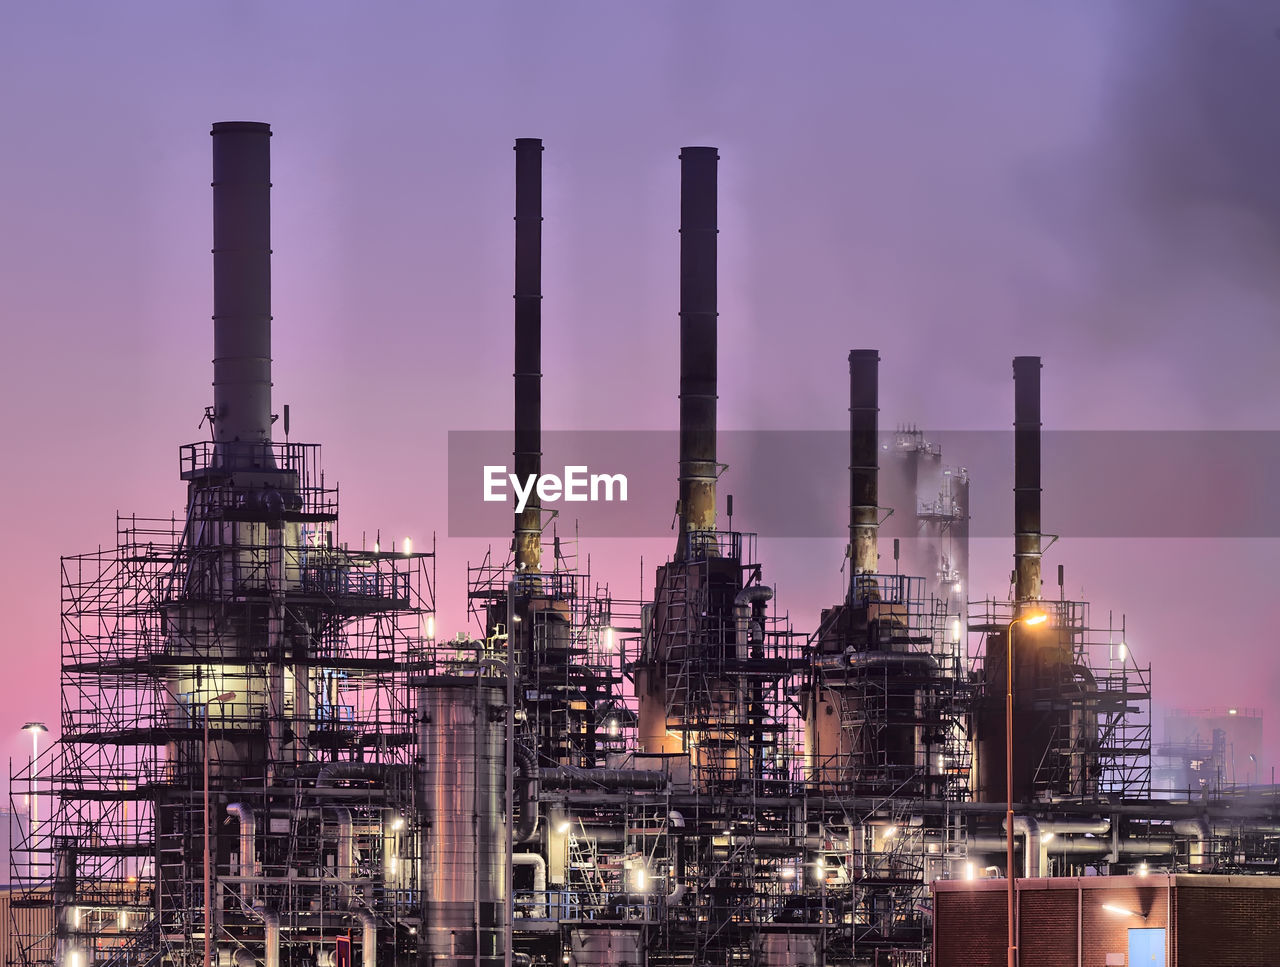 Low angle view of chemical plant against purple sky